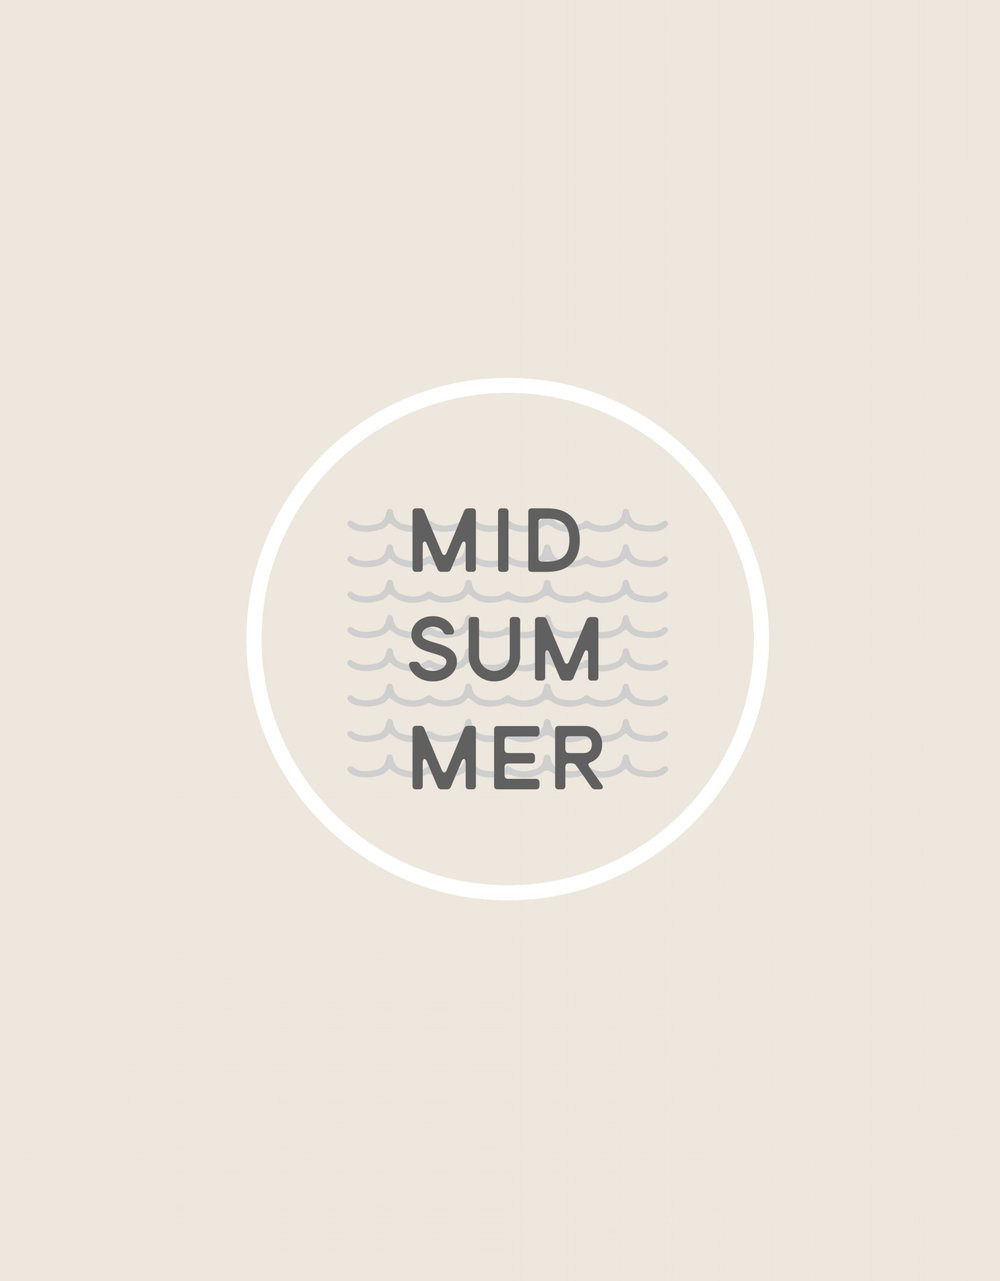 Wendling_Boyd_Midsummer_Resolution_Blog_Post_Graphic.jpg